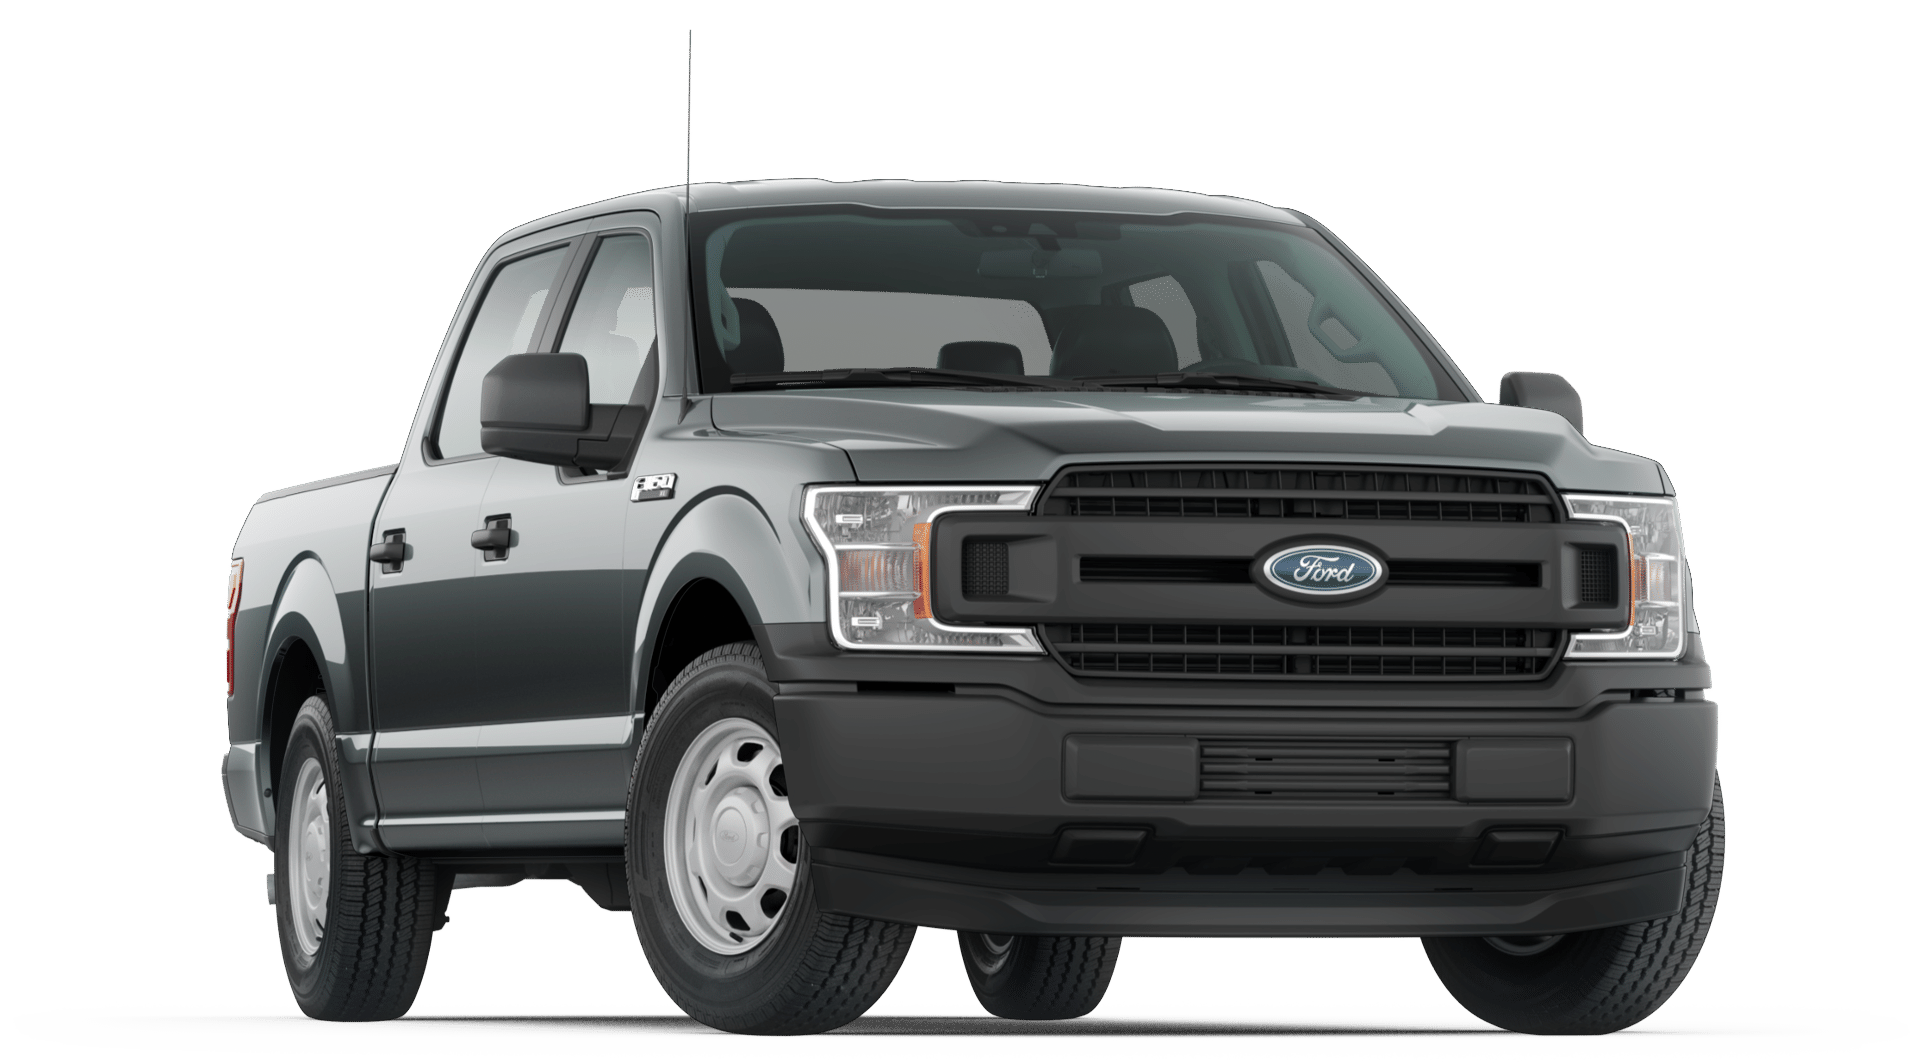 Bastrop Ford - 2020 Ford F-150 SuperCrew 5.5